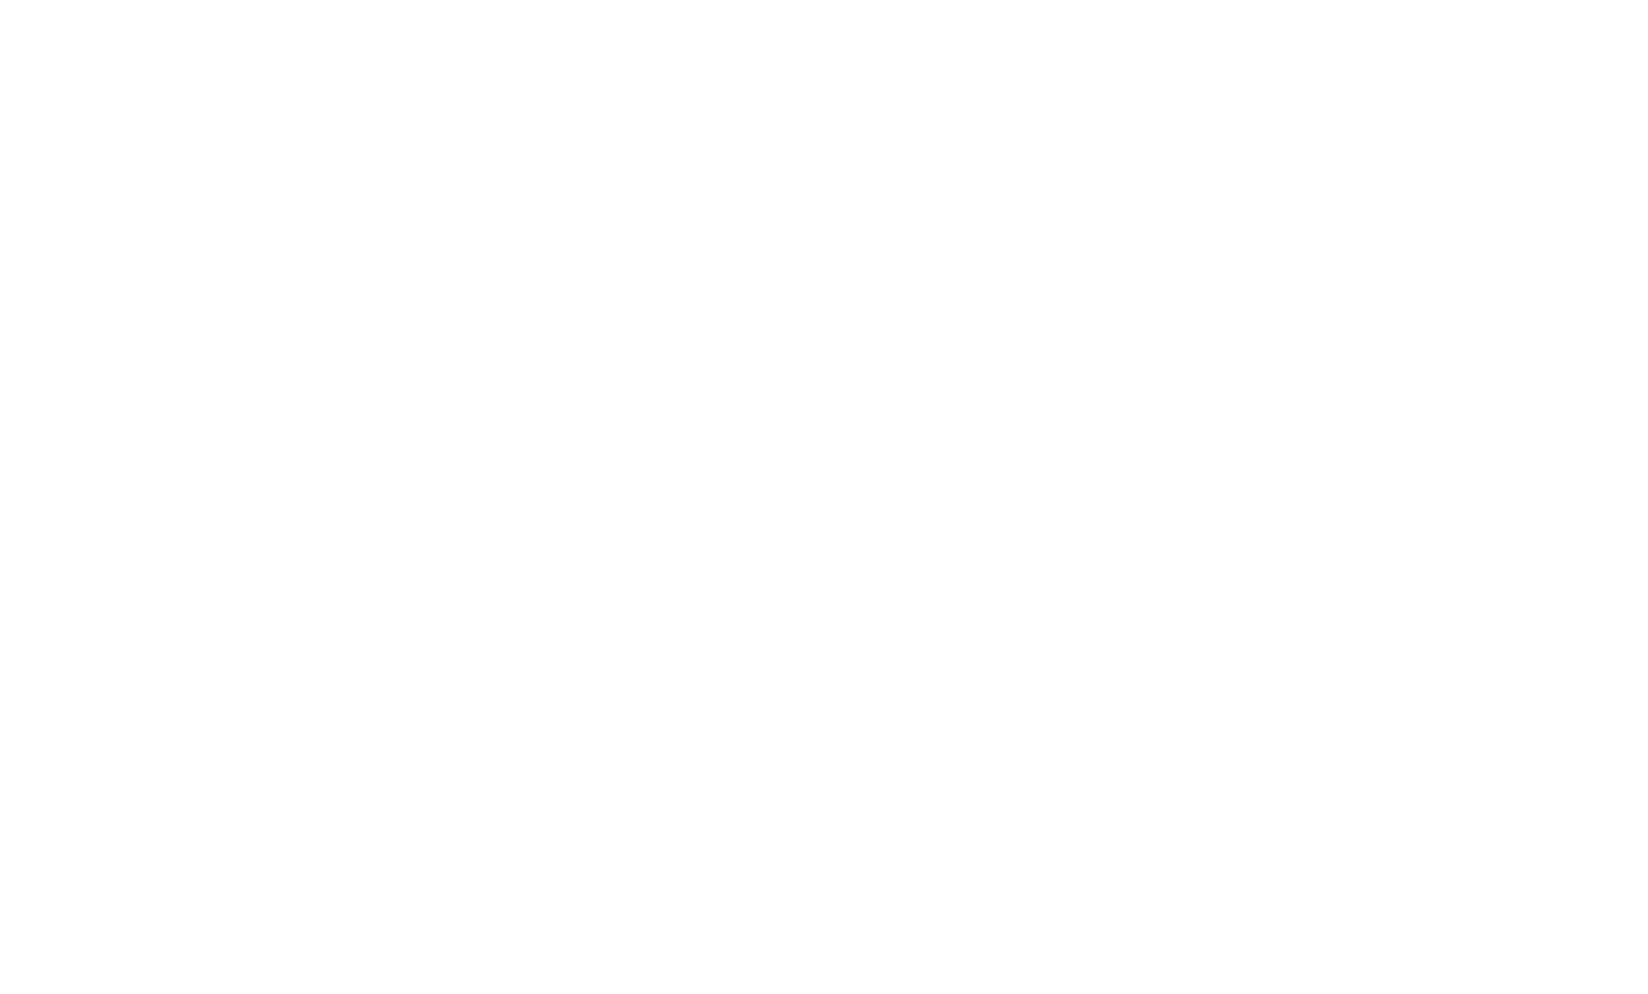 Vision Engineering Manufacturing Services Logo